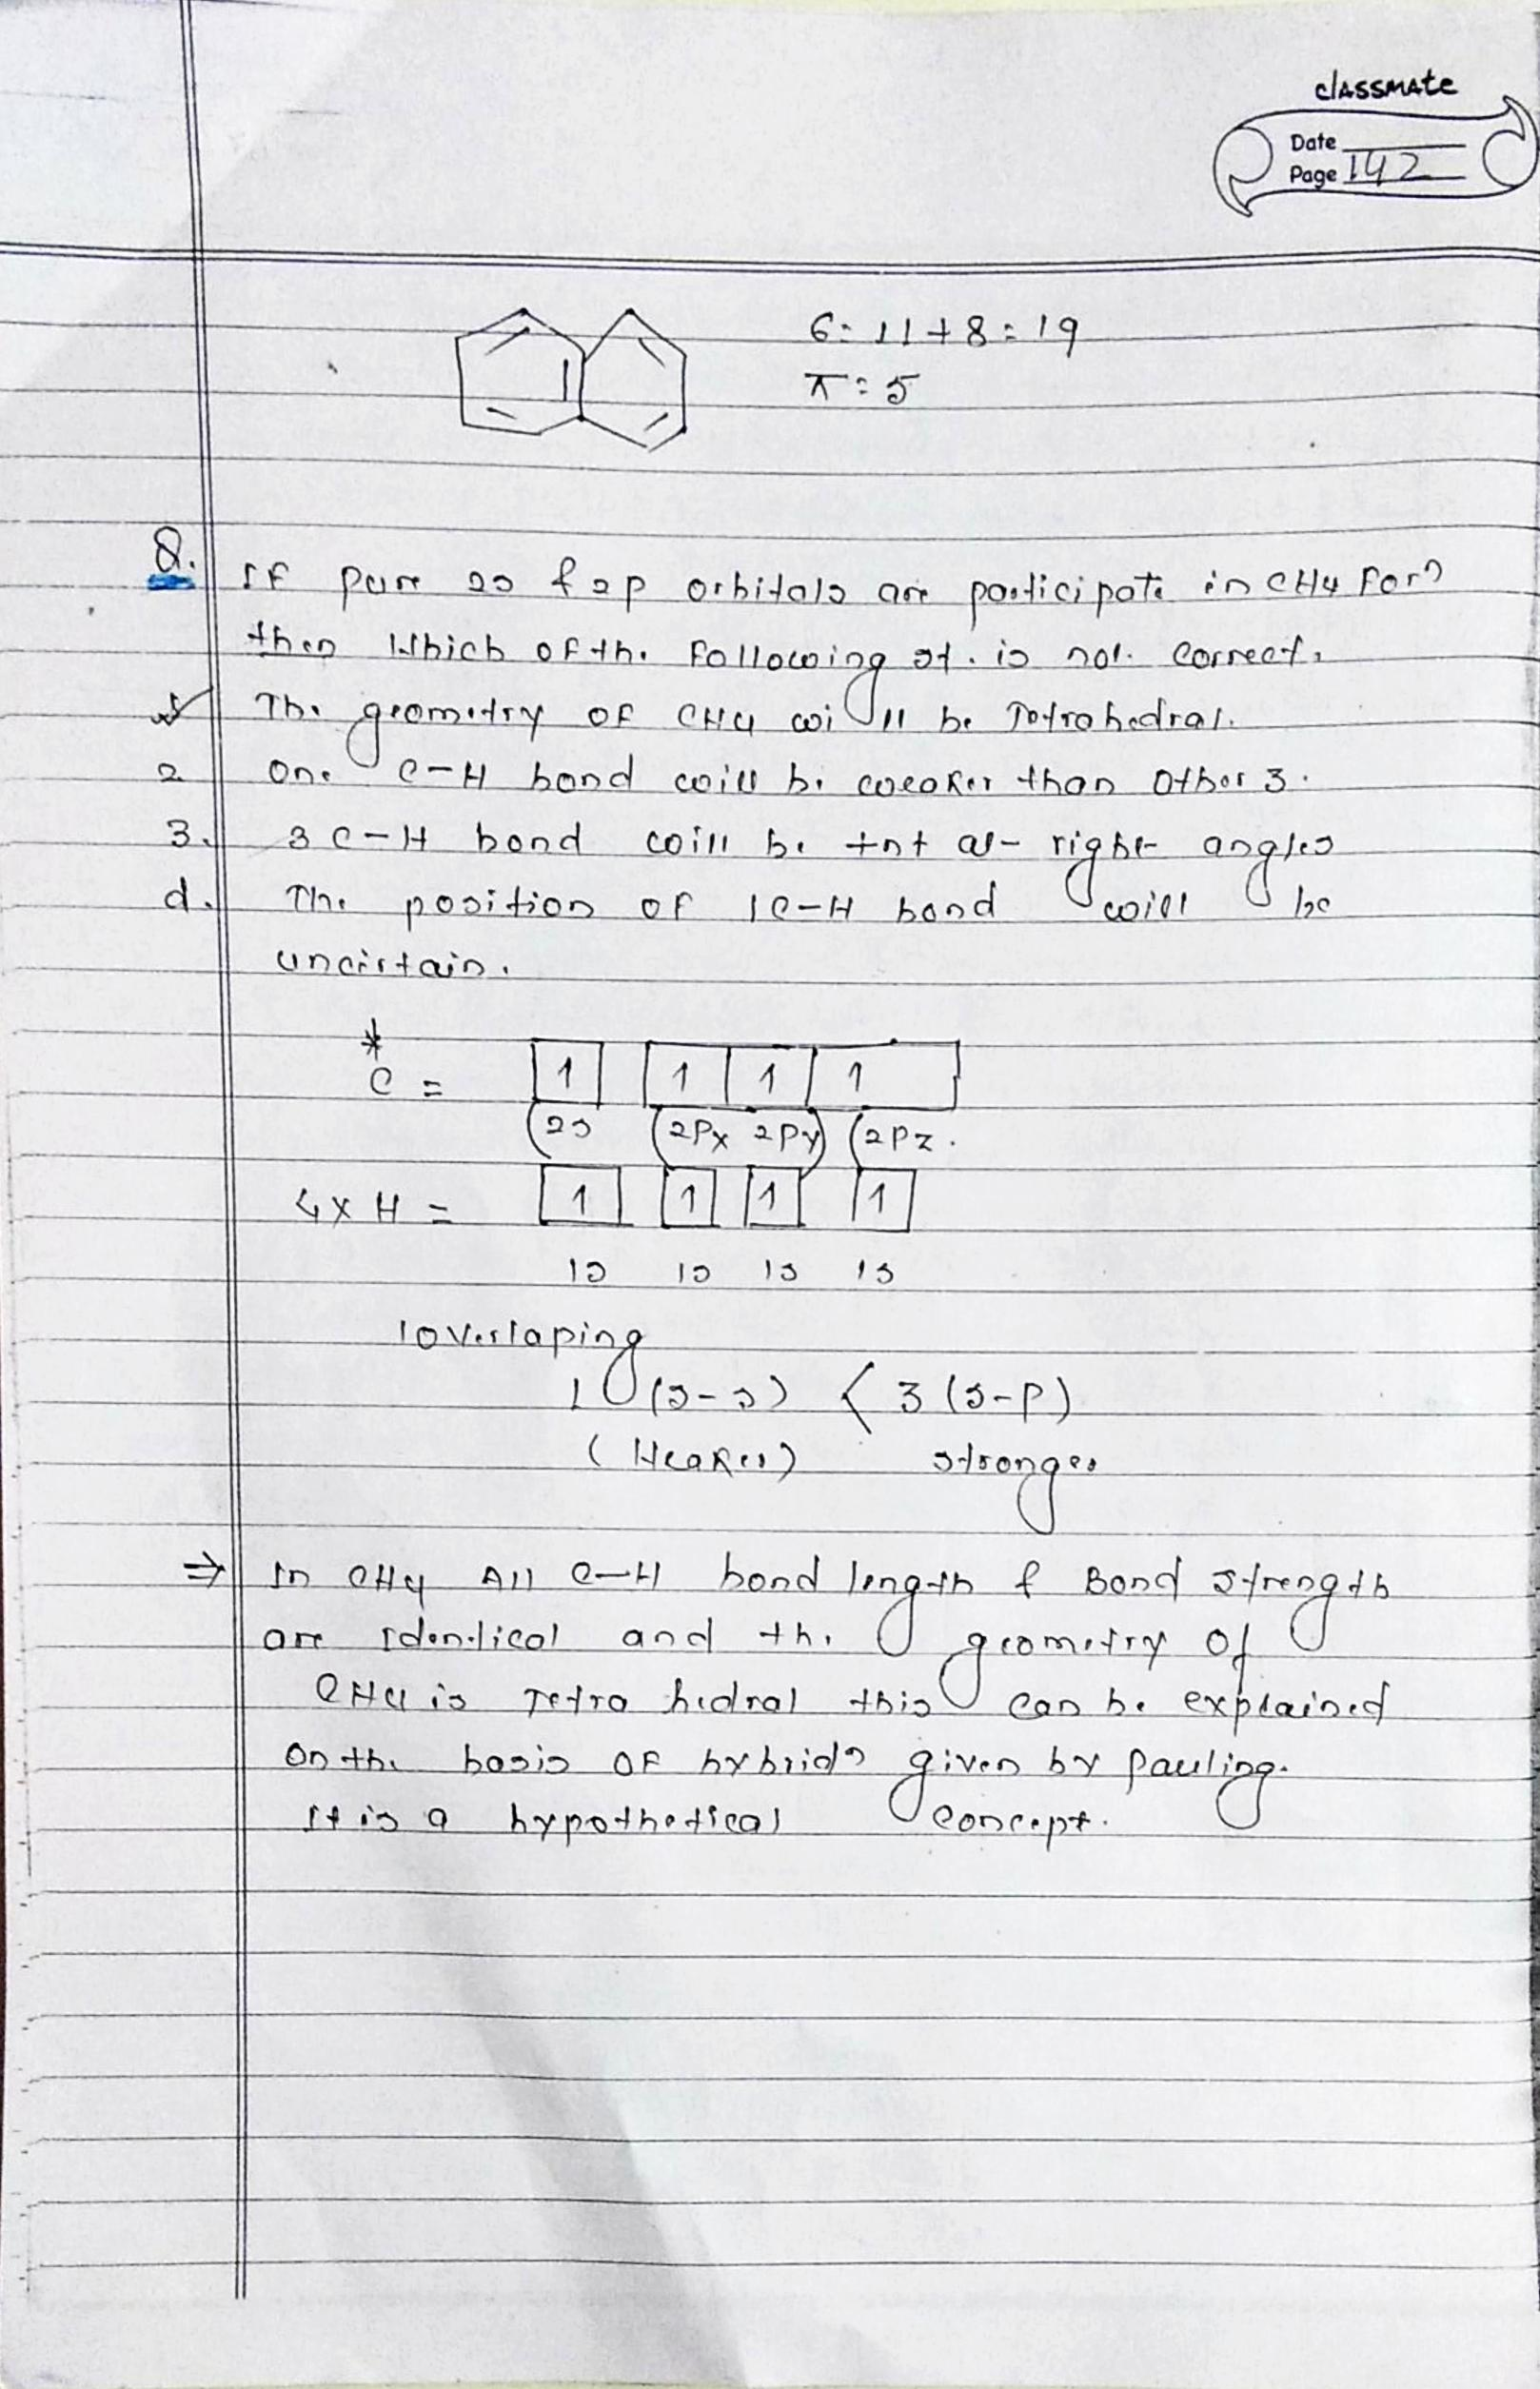 chemical bonding class 11 notes pdf download